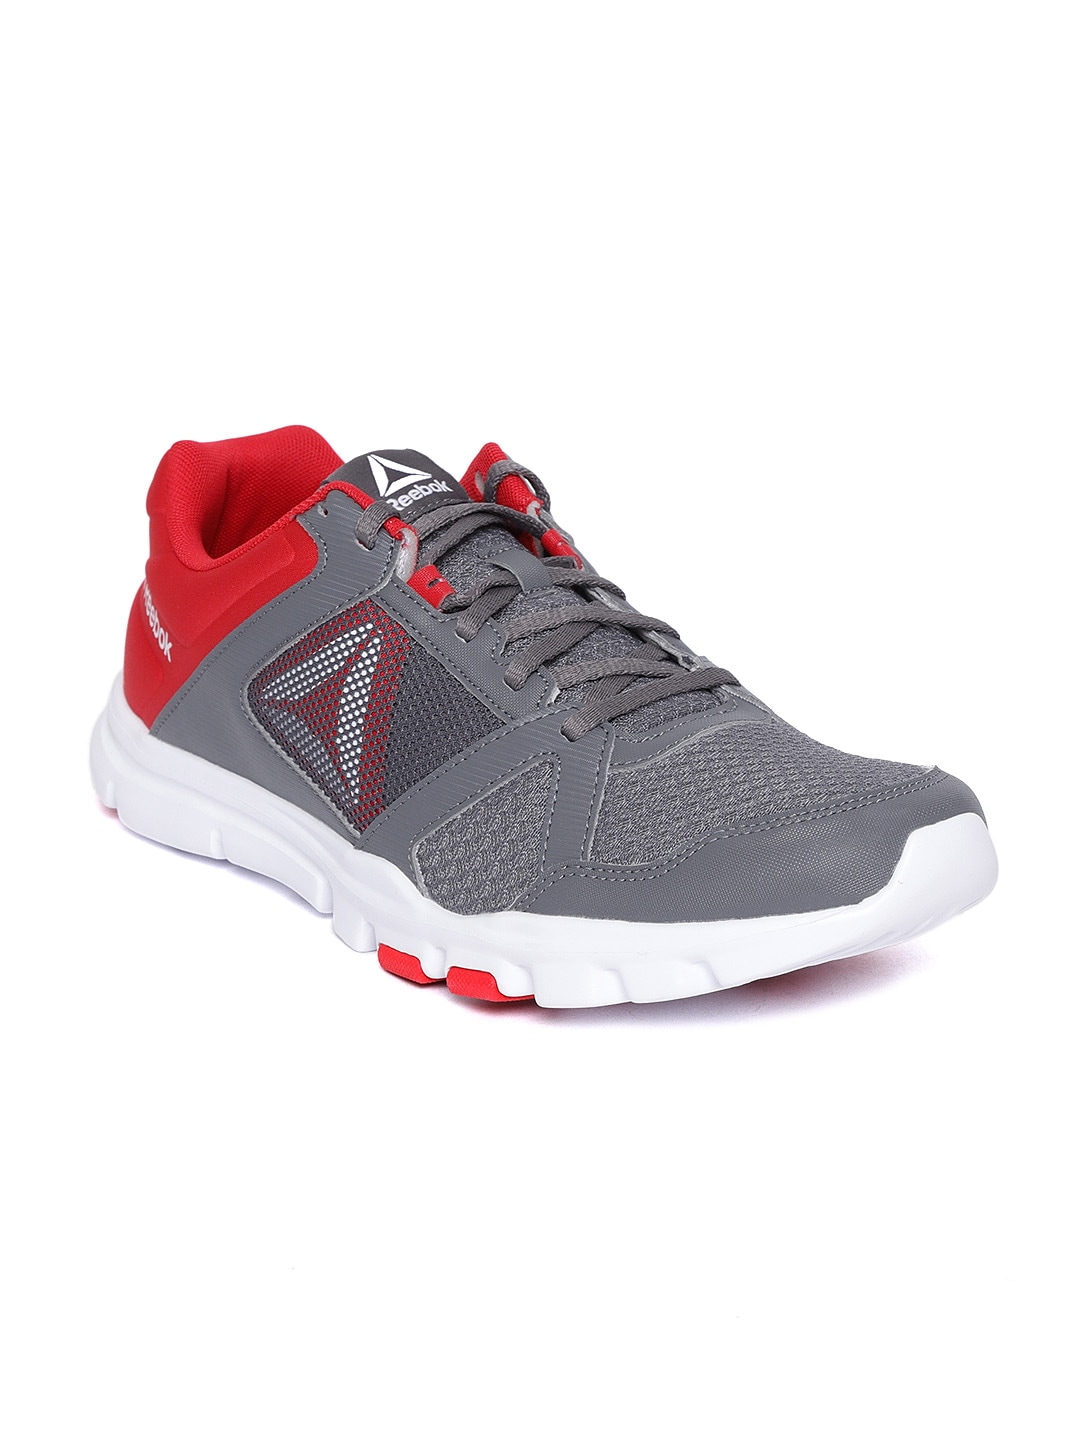 eda228d801351 Men s Reebok Sports Shoes - Buy Reebok Sports Shoes for Men Online in India